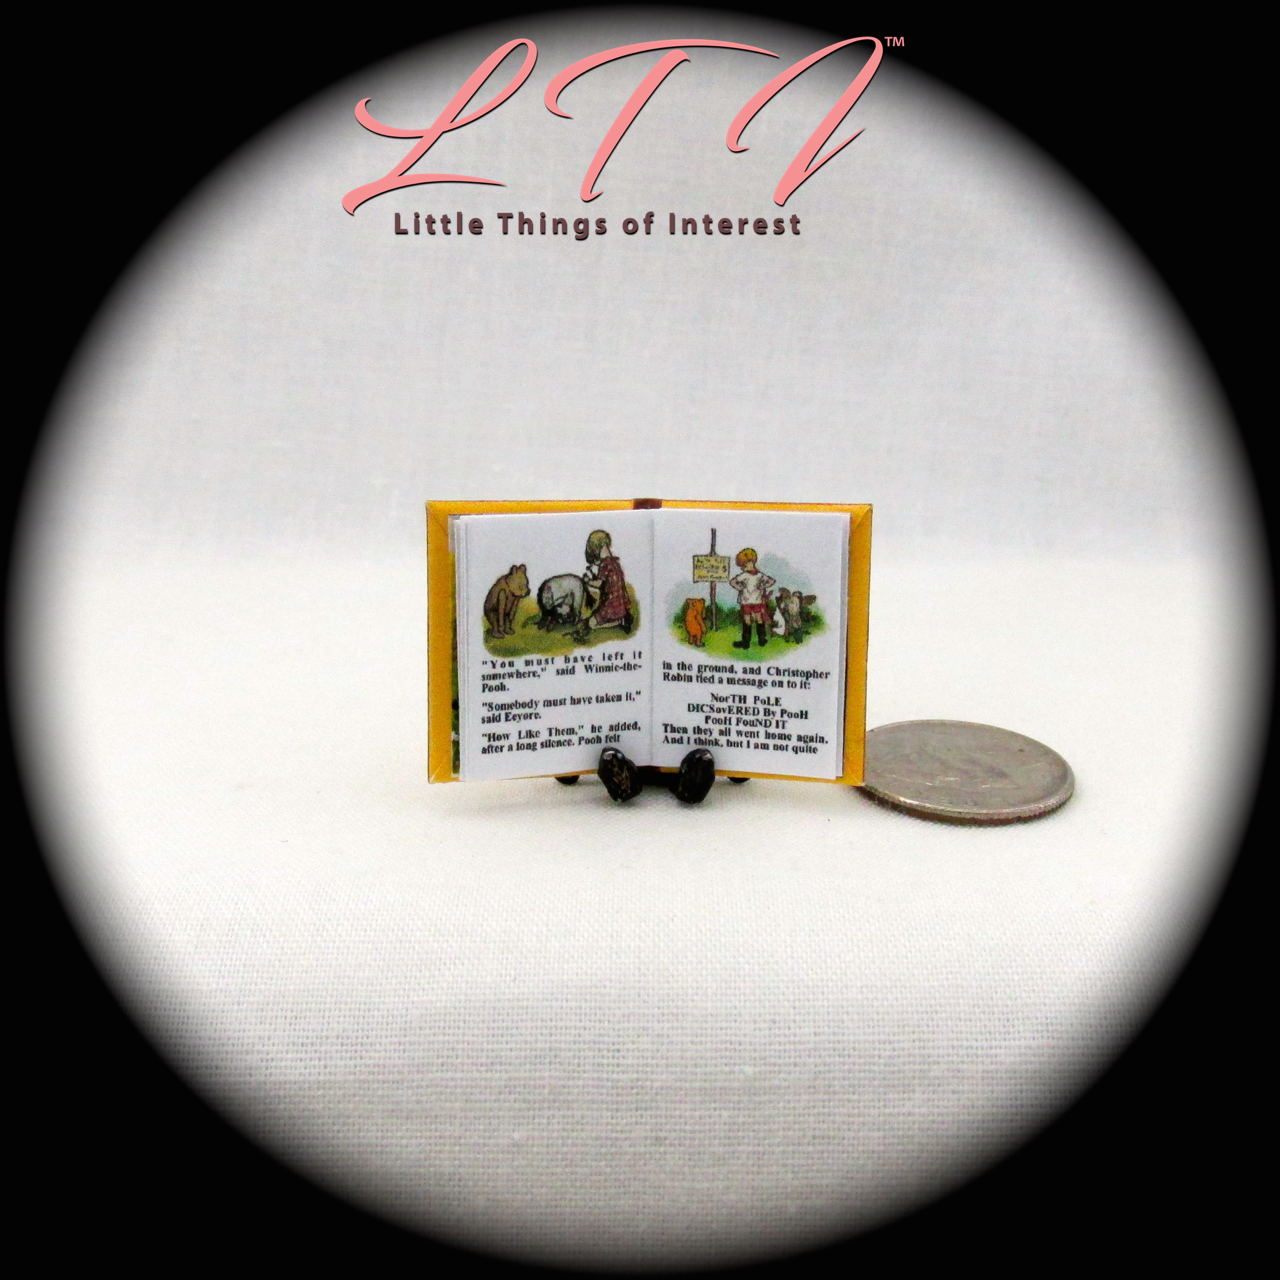 WINNIE THE POOH Miniature Book Dollhouse 1:12 Scale Illustrated Readable Book 7